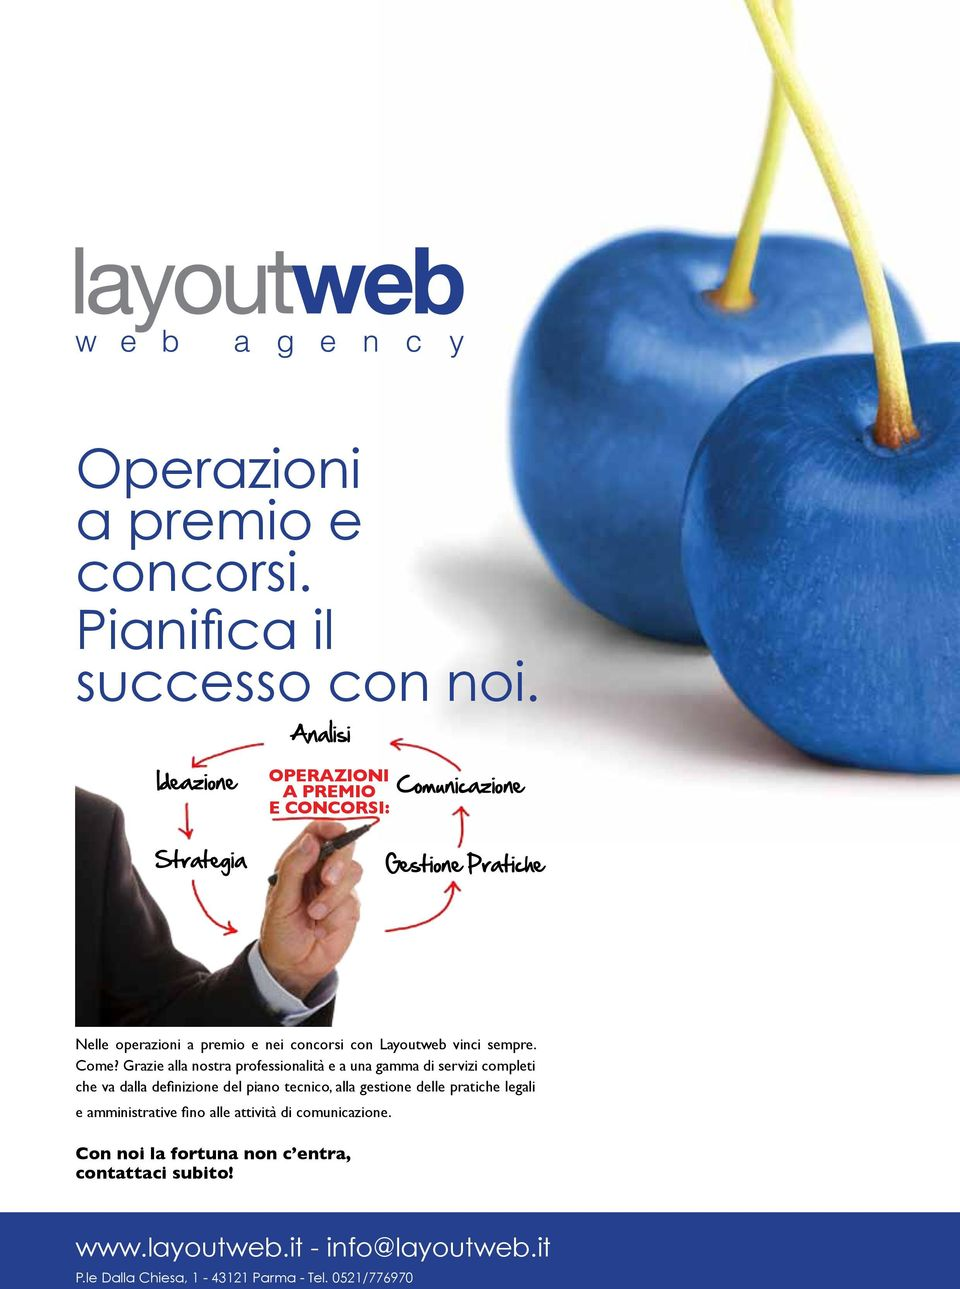 Layoutweb vinci sempre. Come?